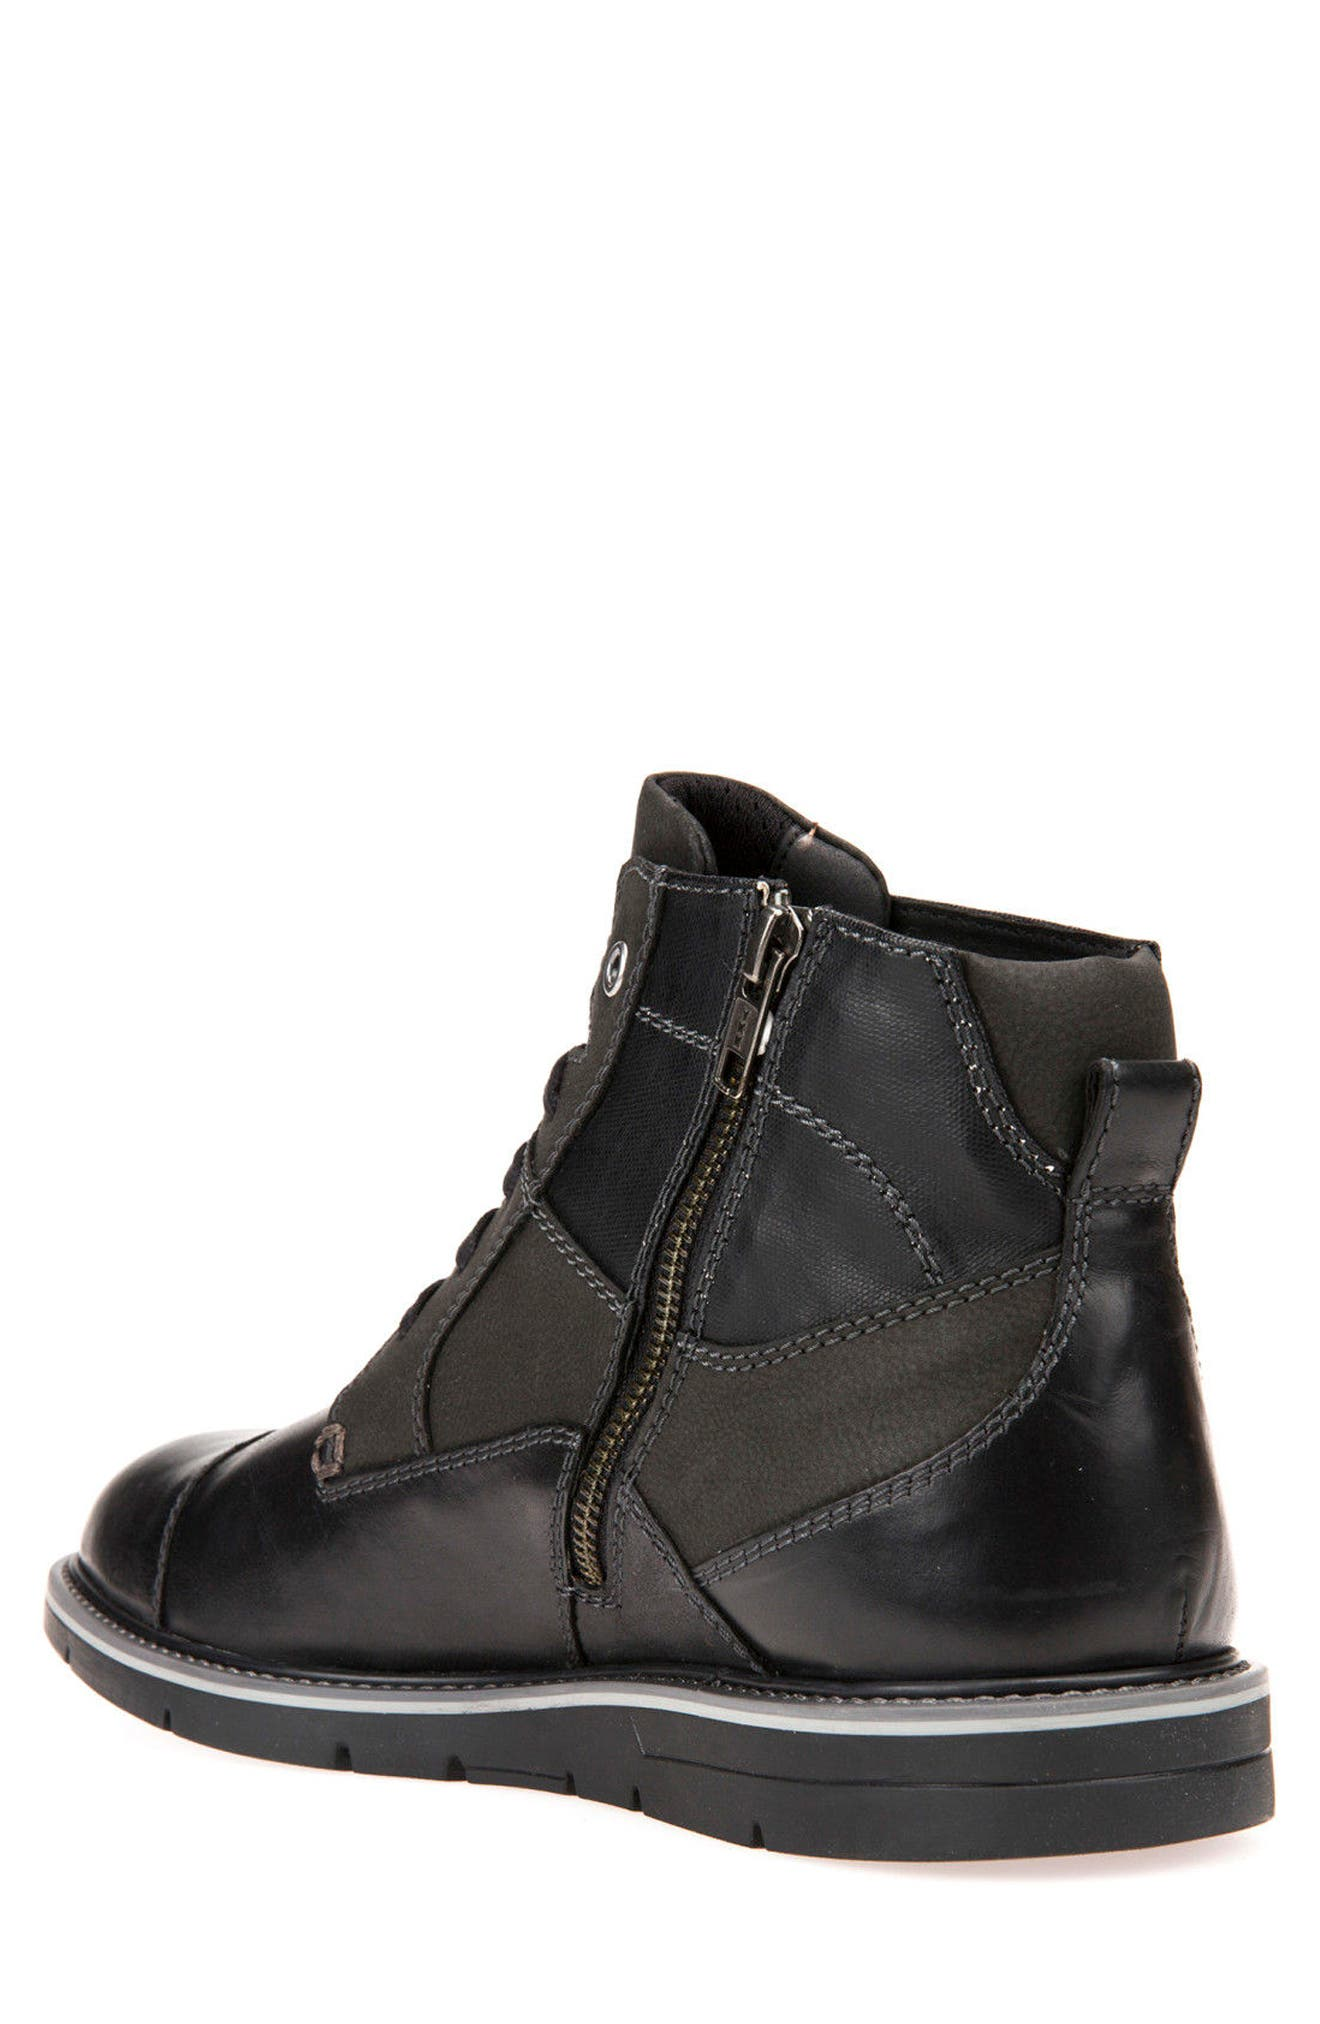 Muvet 5 Cap Toe Boot,                             Alternate thumbnail 2, color,                             001